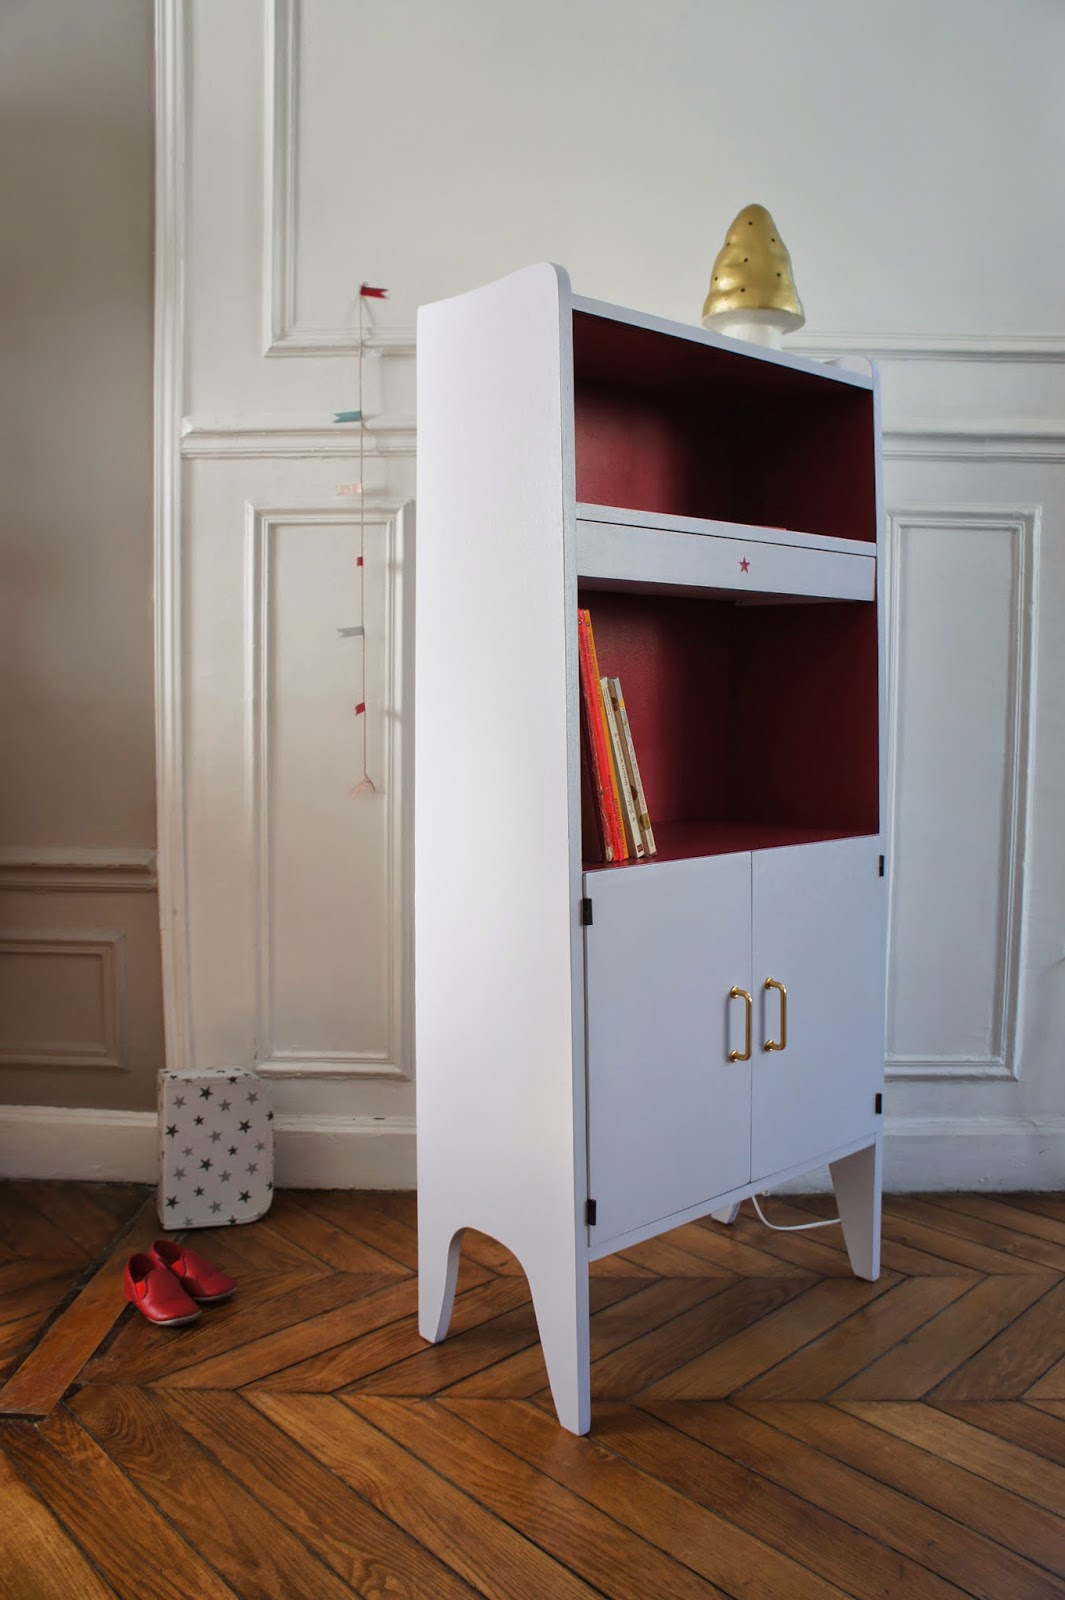 atelier petit toit biblioth ques vintage revisit es sur commande mars 14. Black Bedroom Furniture Sets. Home Design Ideas